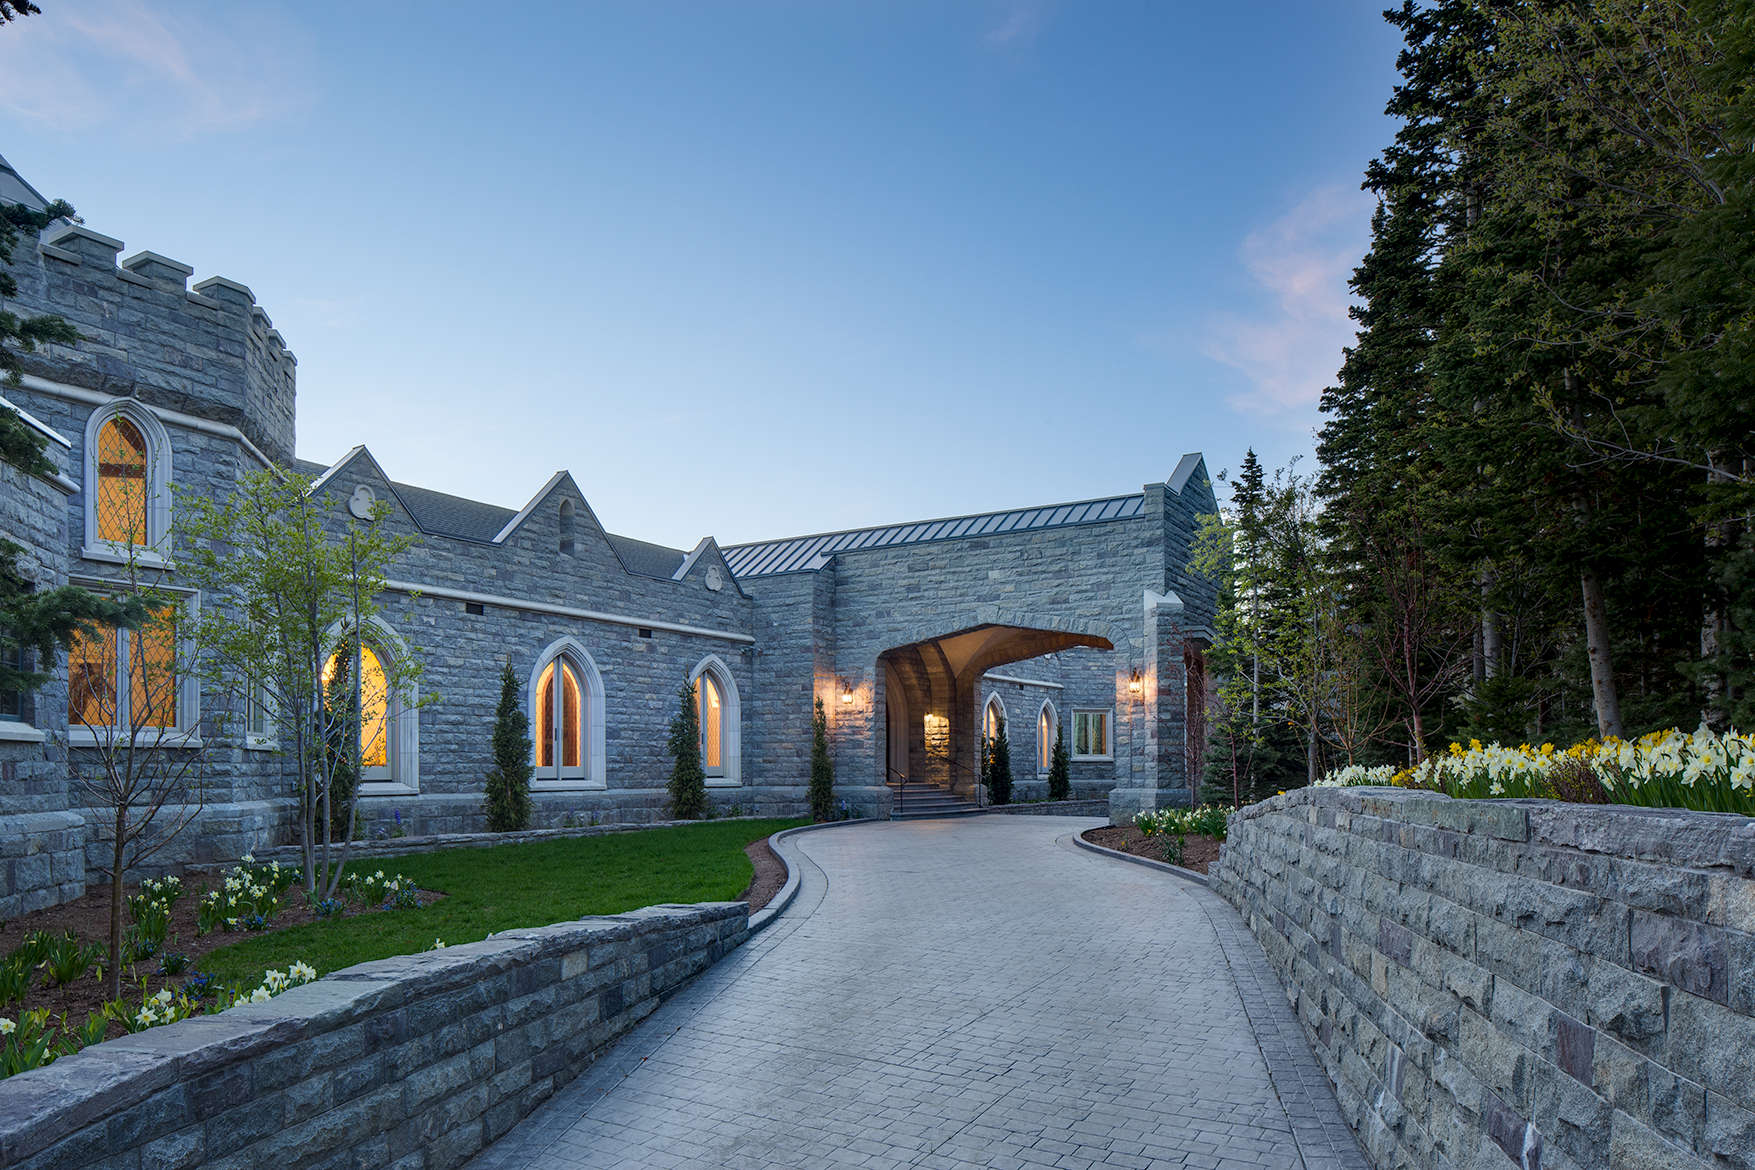 Exterior view at dusk looking up stone walled drive way of a Scott manor house in Park City, UT with glowing windows.